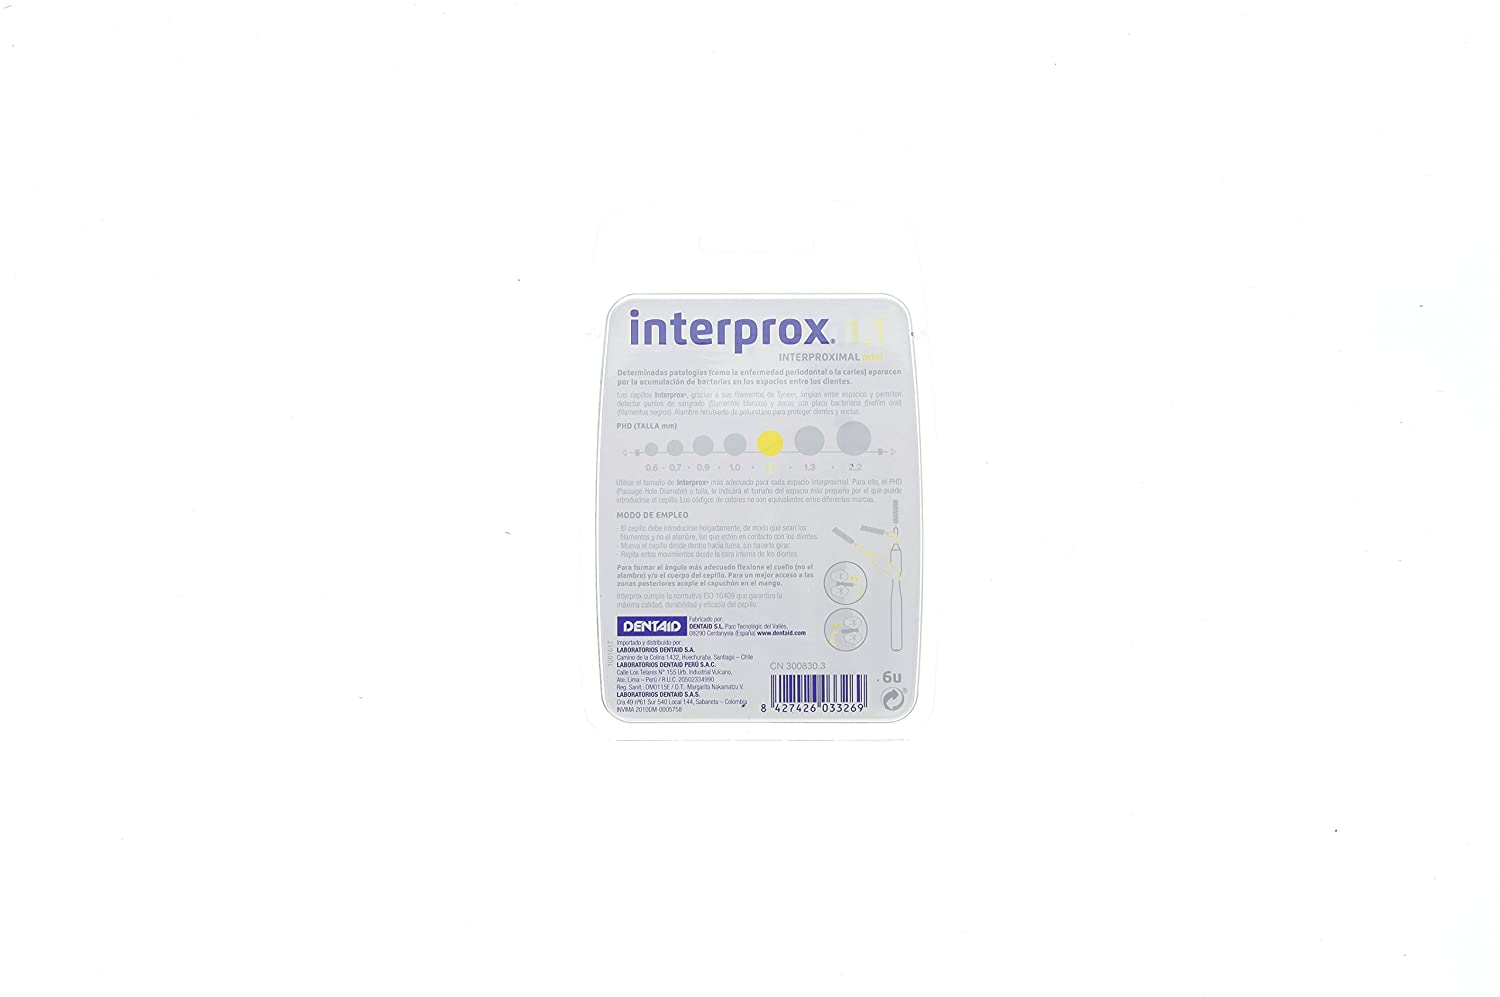 Amazon.com: Interprox 1.1 Interproximal Mini 6 Units: Health & Personal Care